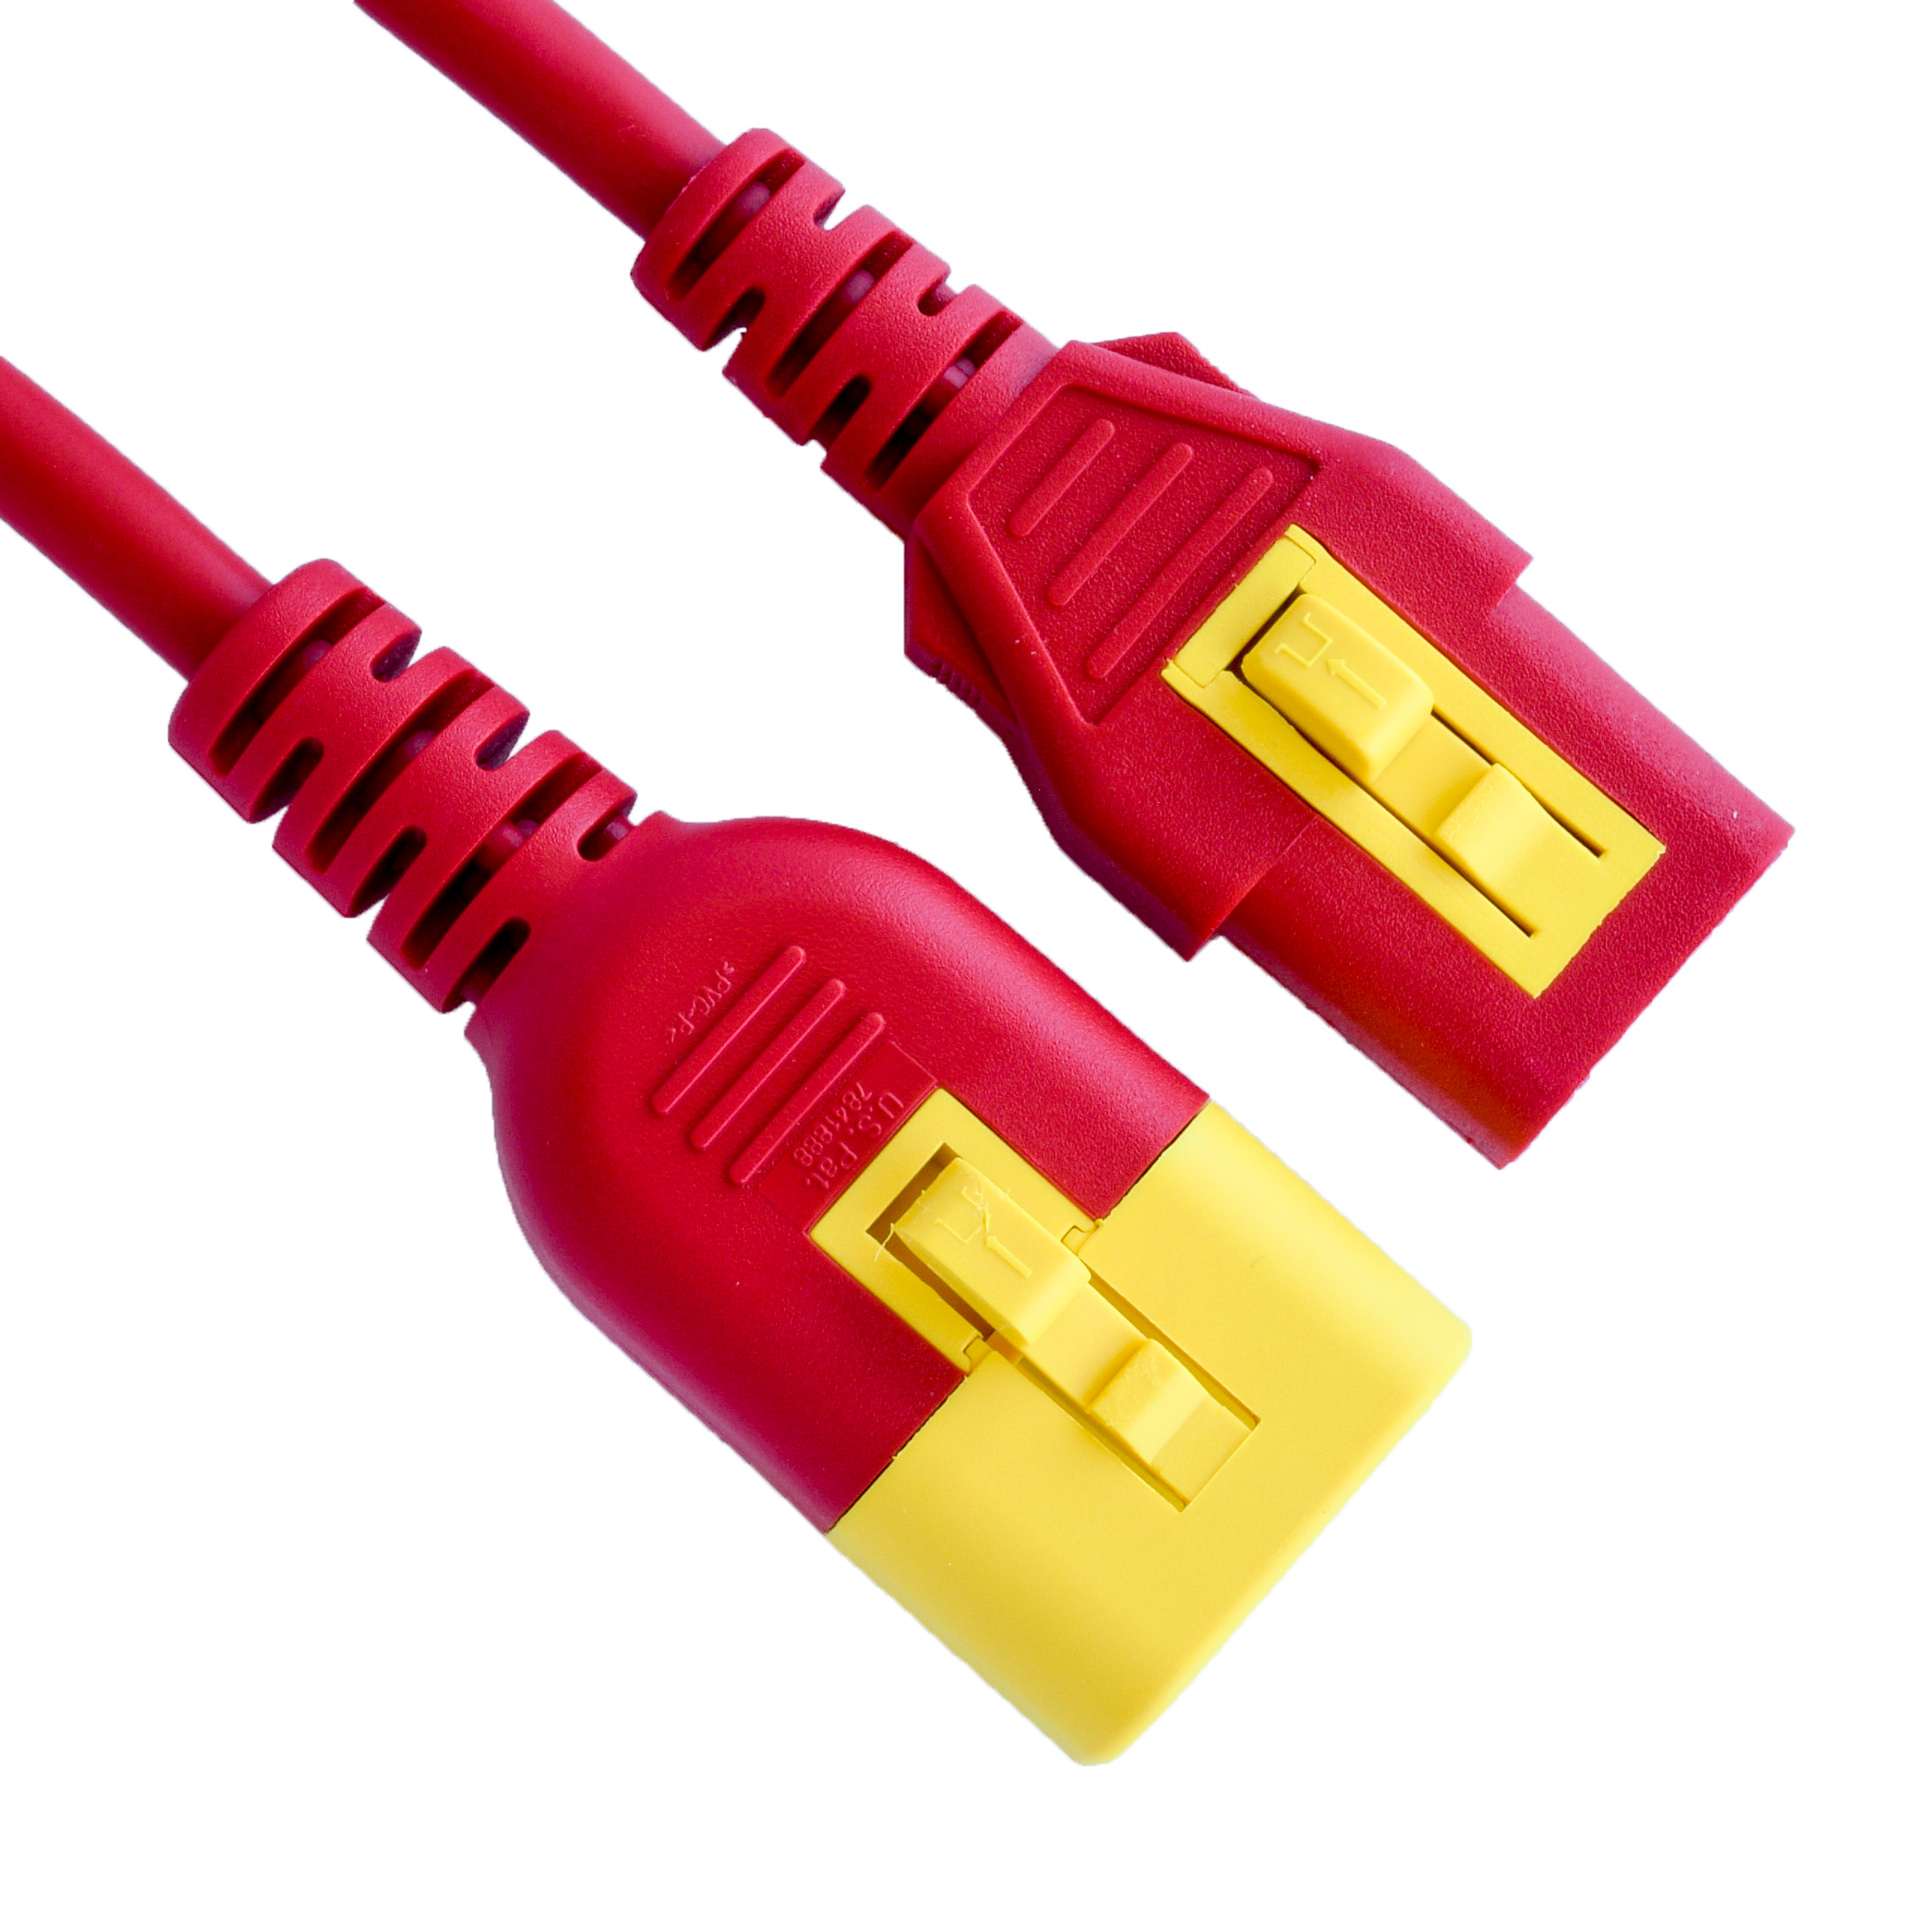 10A V-Lock C14 C13 Power Cords - RED